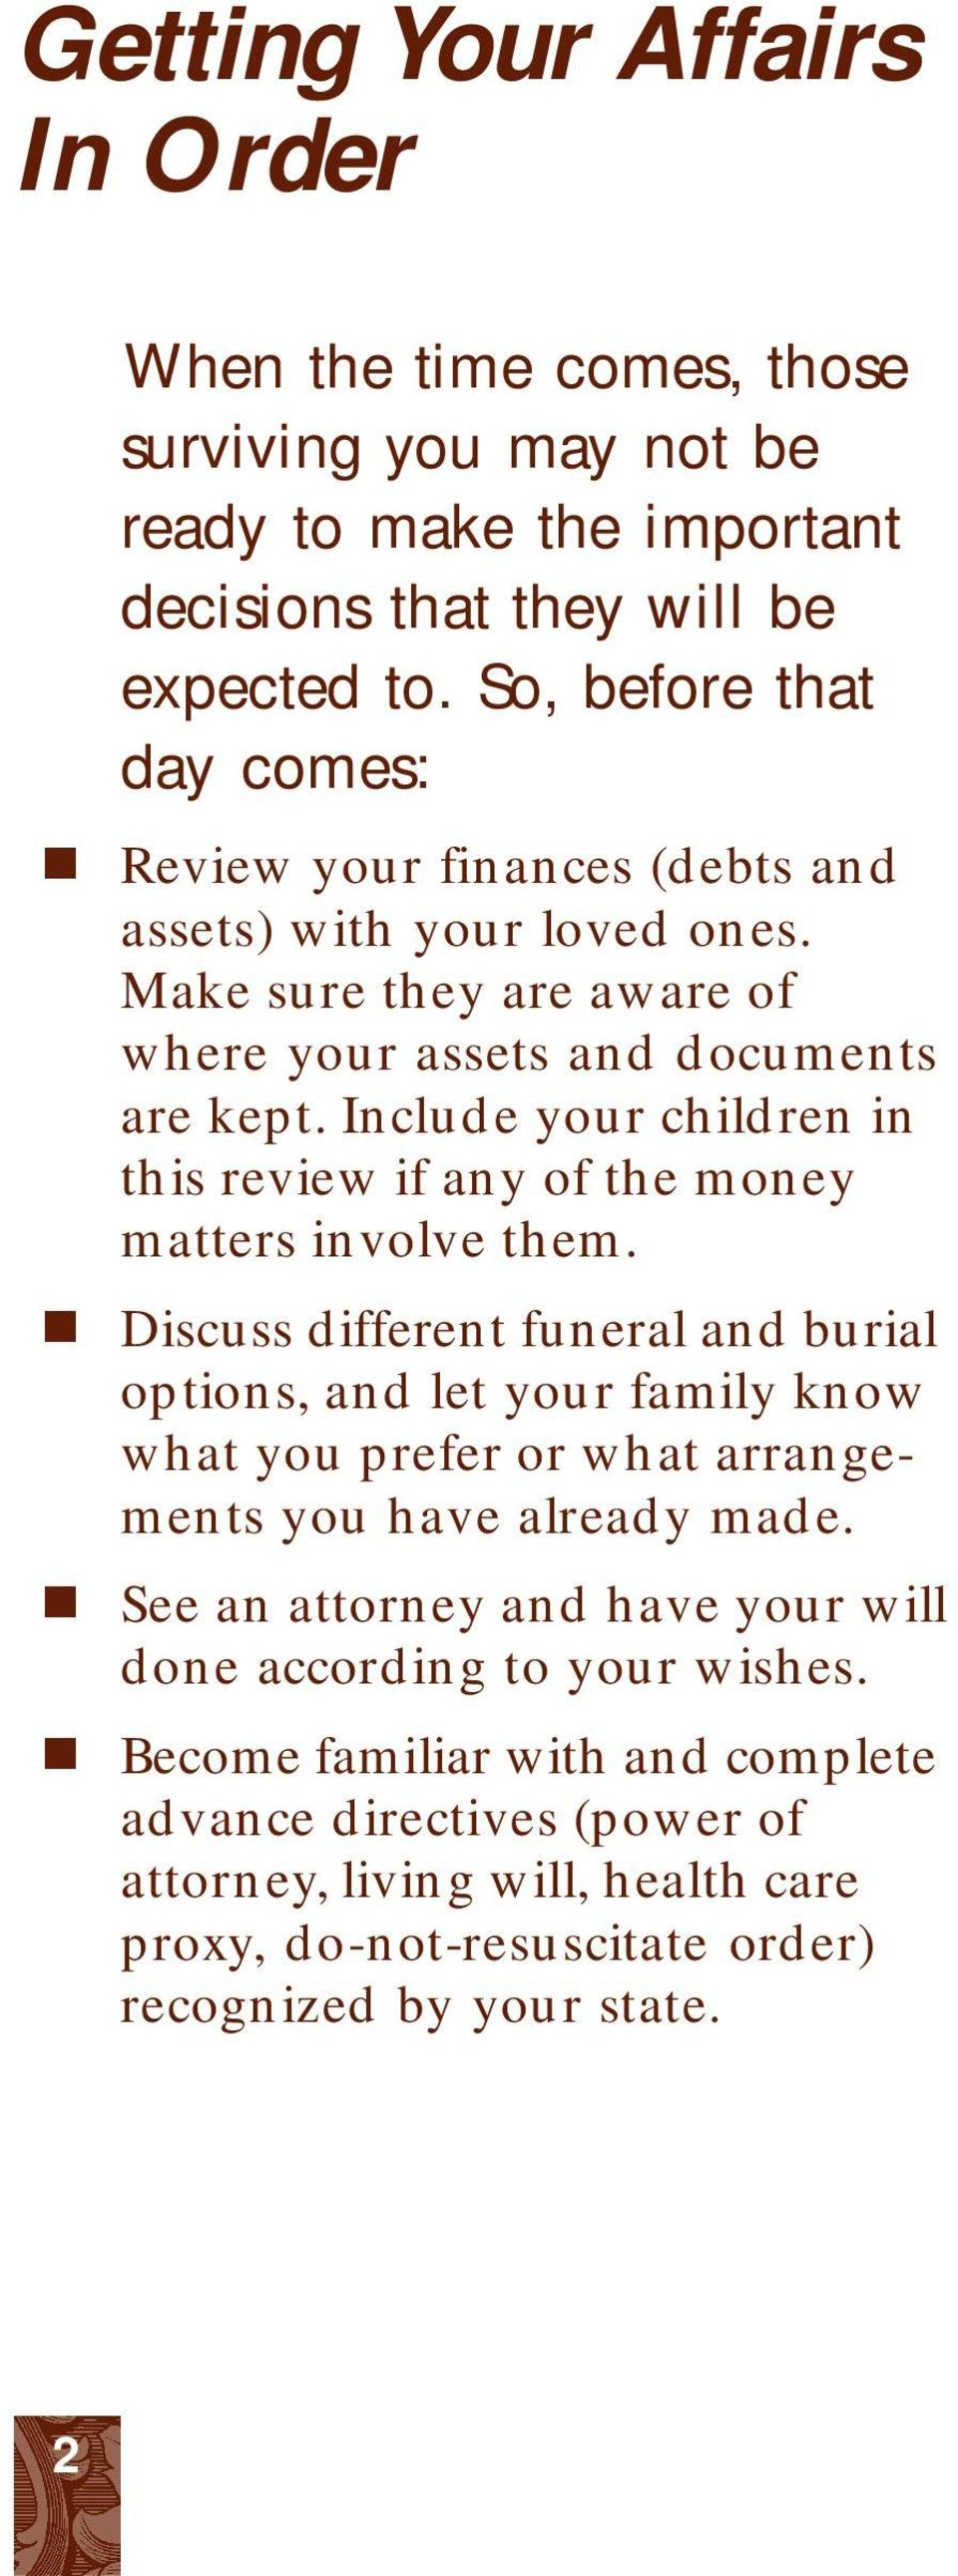 Include your children in this review if any of the money matters involve them.